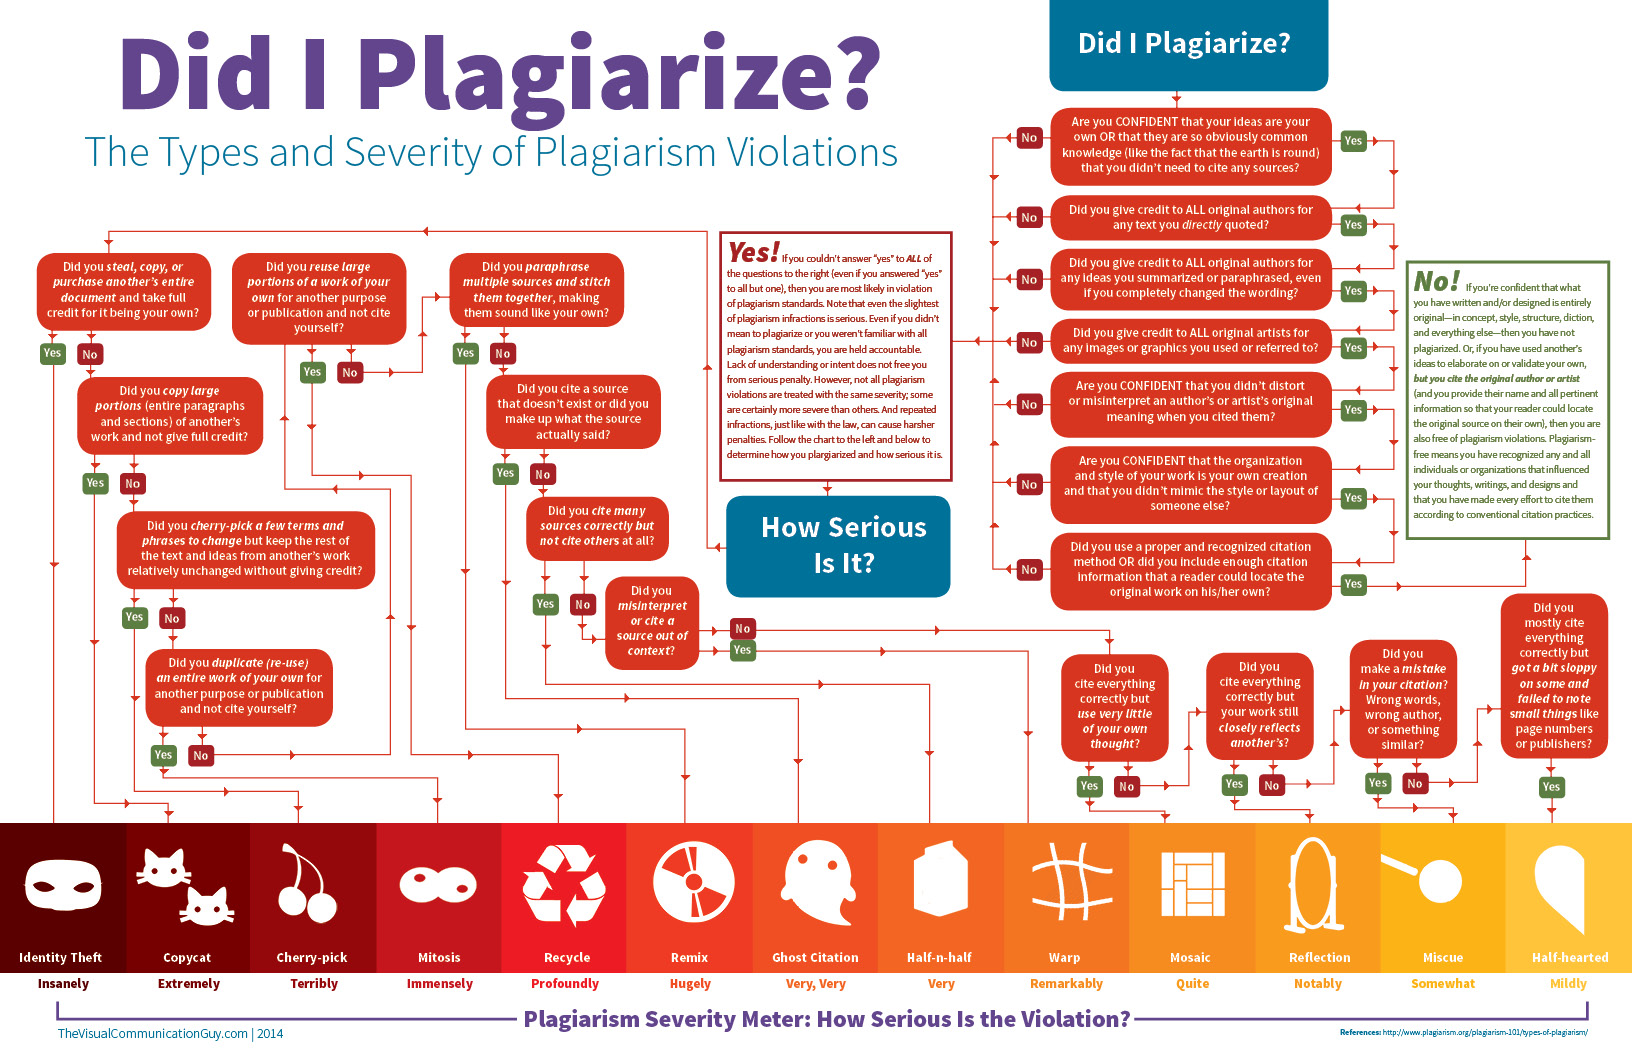 http://thevisualcommunicationguy.com/wp-content/uploads/2015/05/Infographic_Did-I-Plagiarize_11x17LowRes.jpg